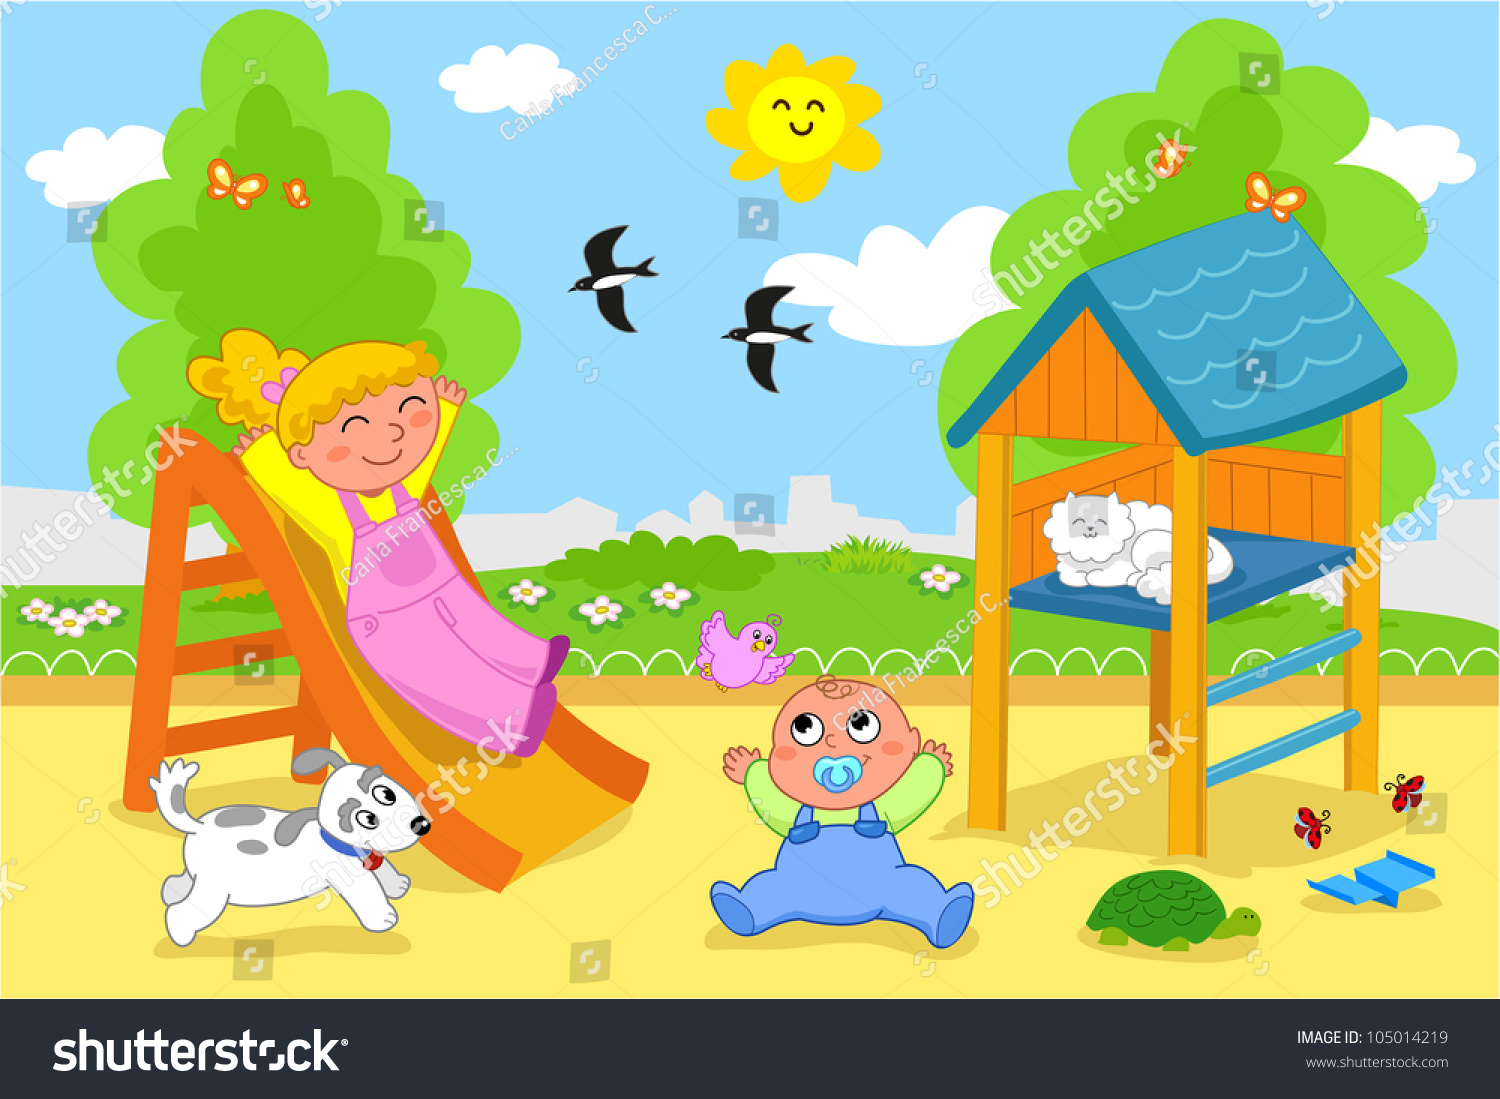 Playground Cartoon Illustration Young Girl Cute Stock